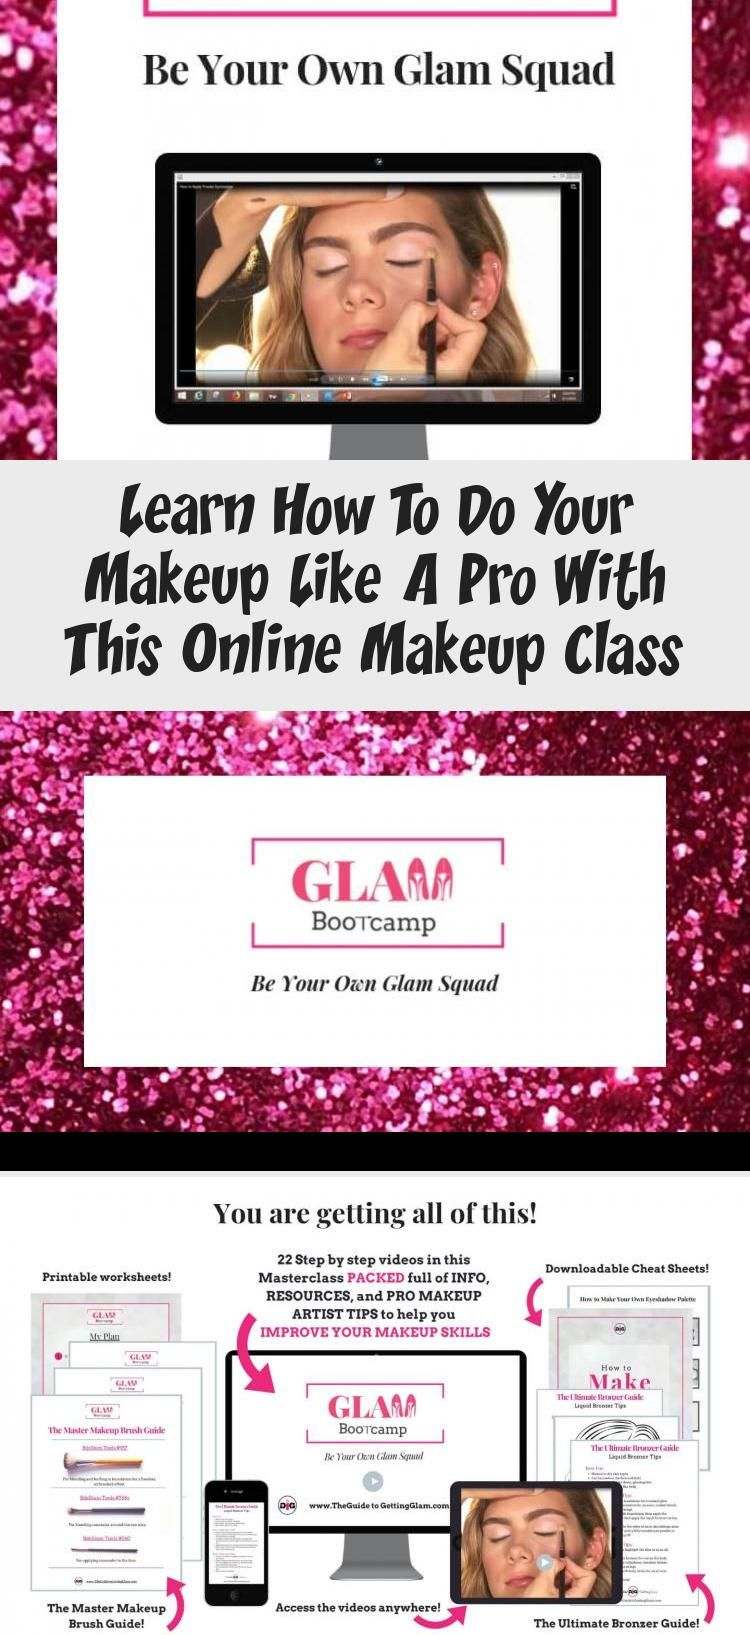 learn how to apply makeup like a pro! in this online makeup